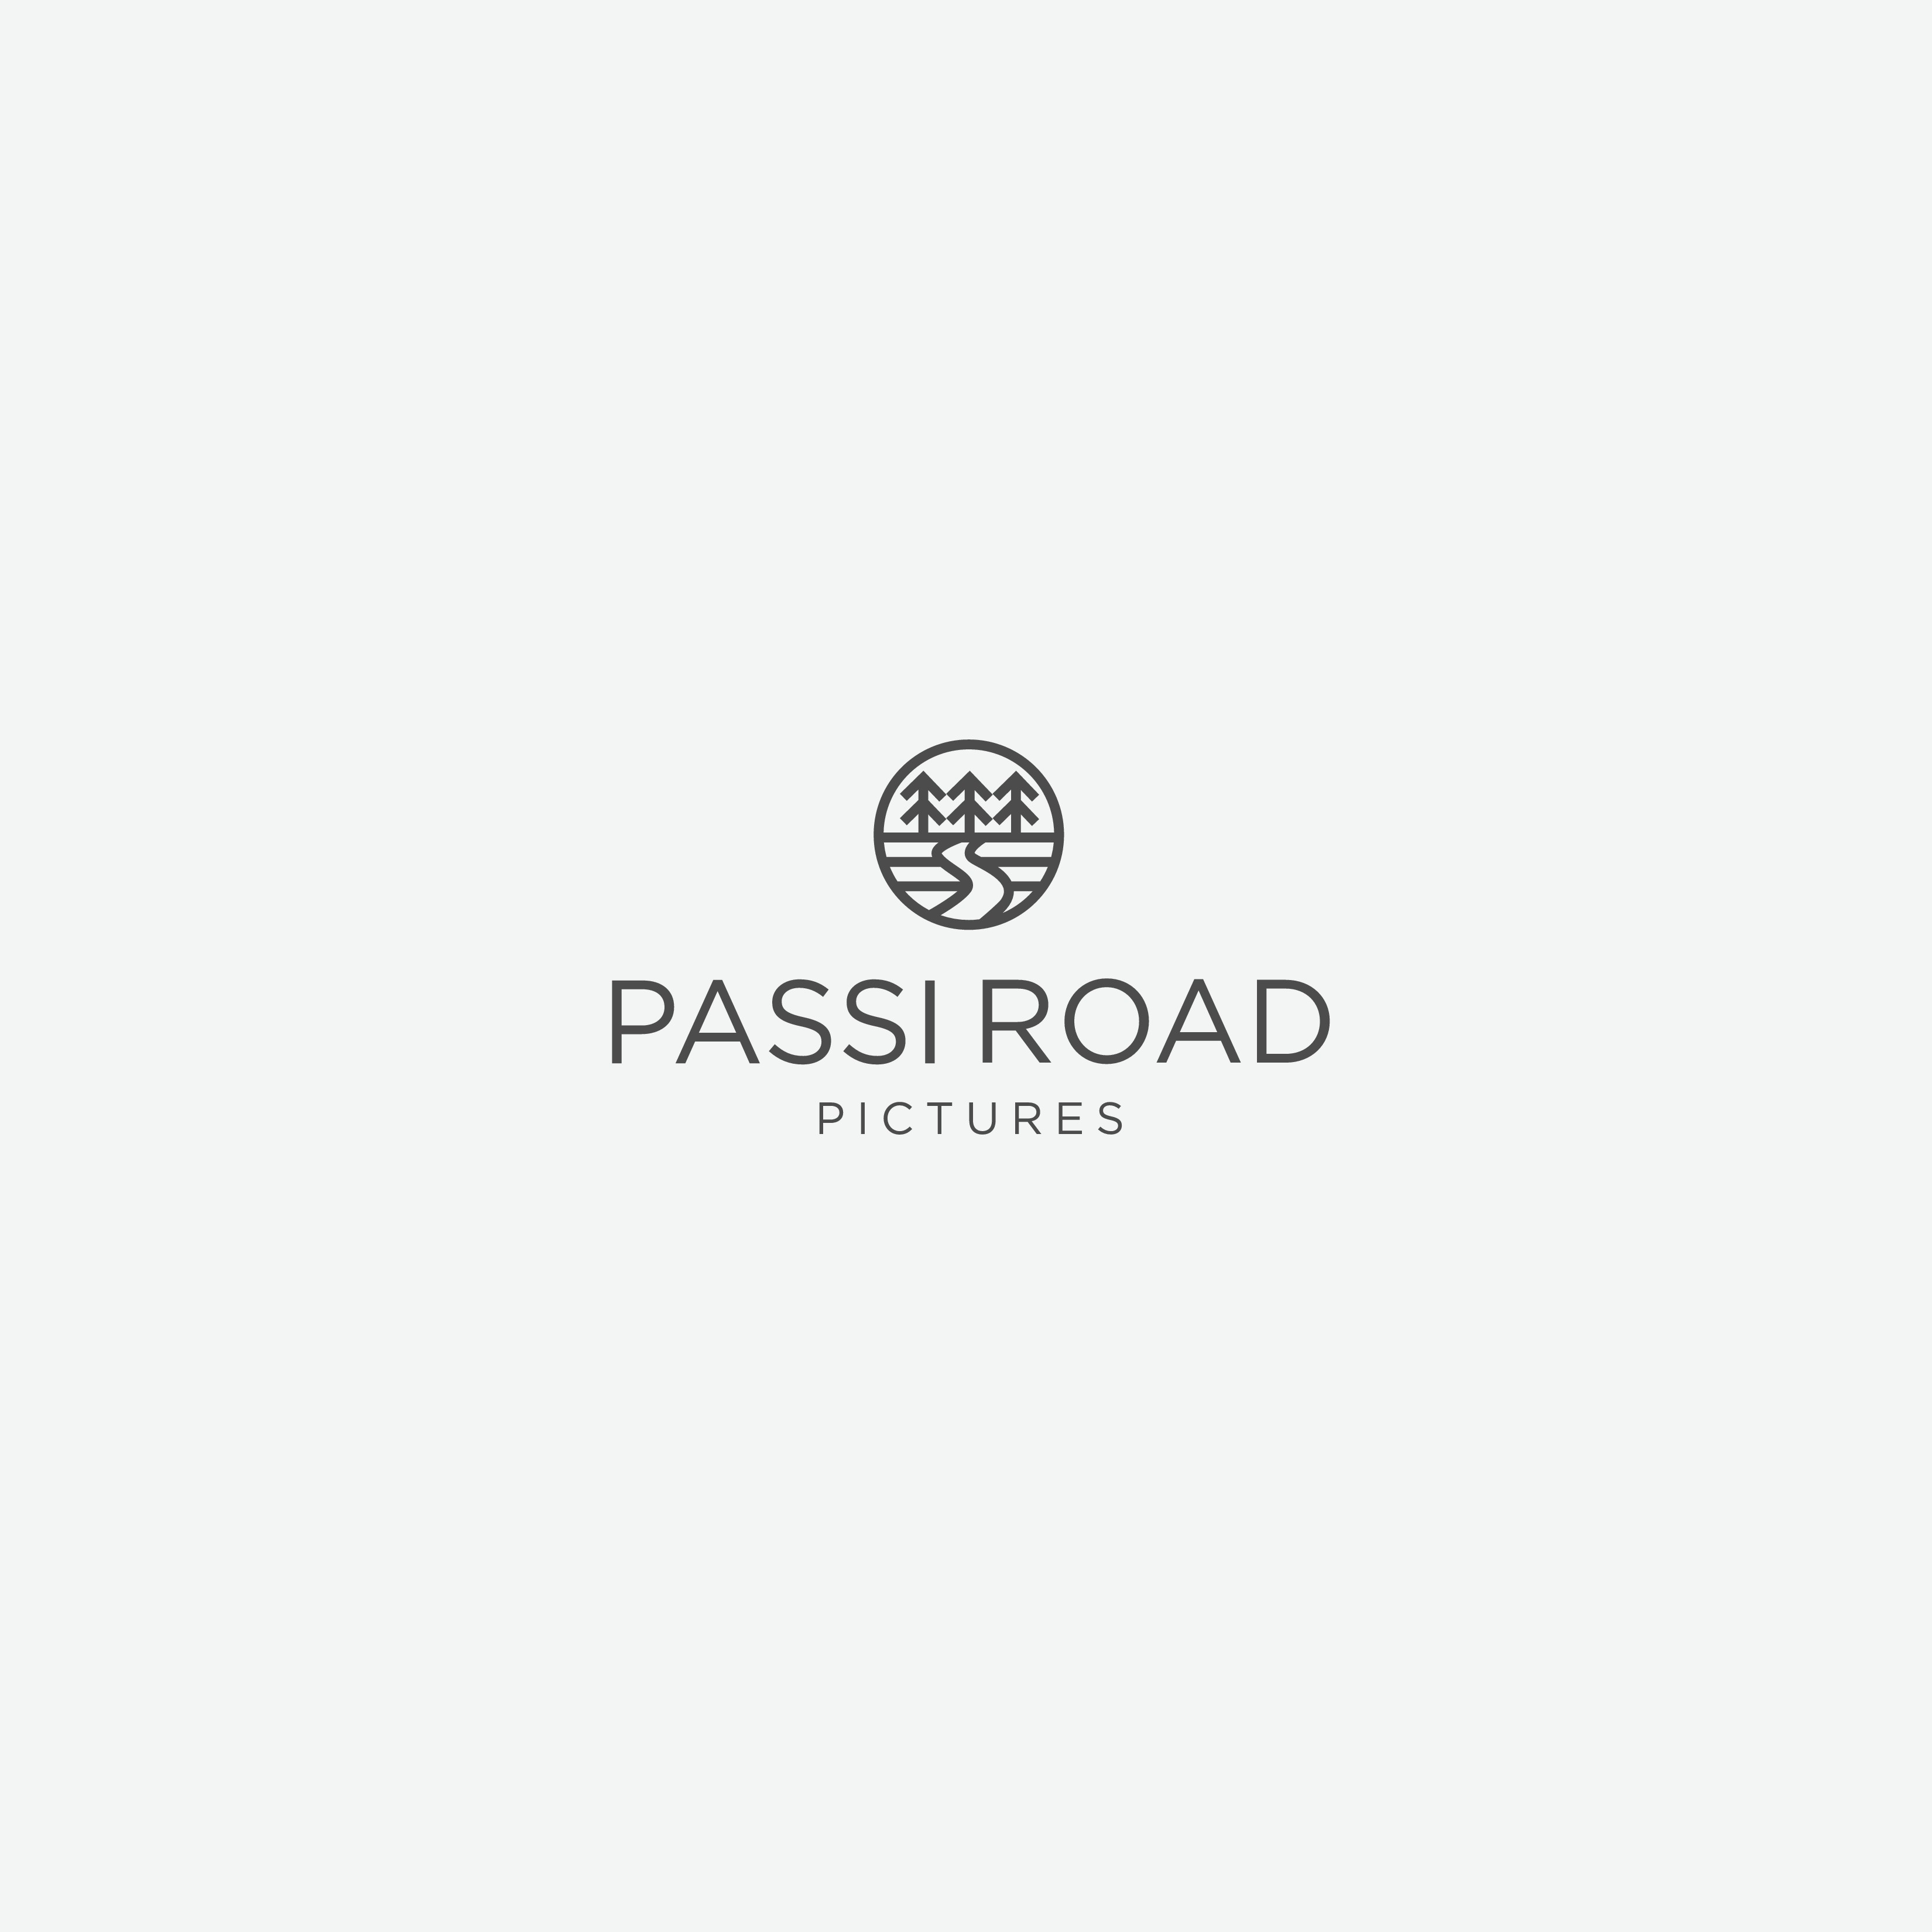 Create a logo for video storytelling company Passi Road